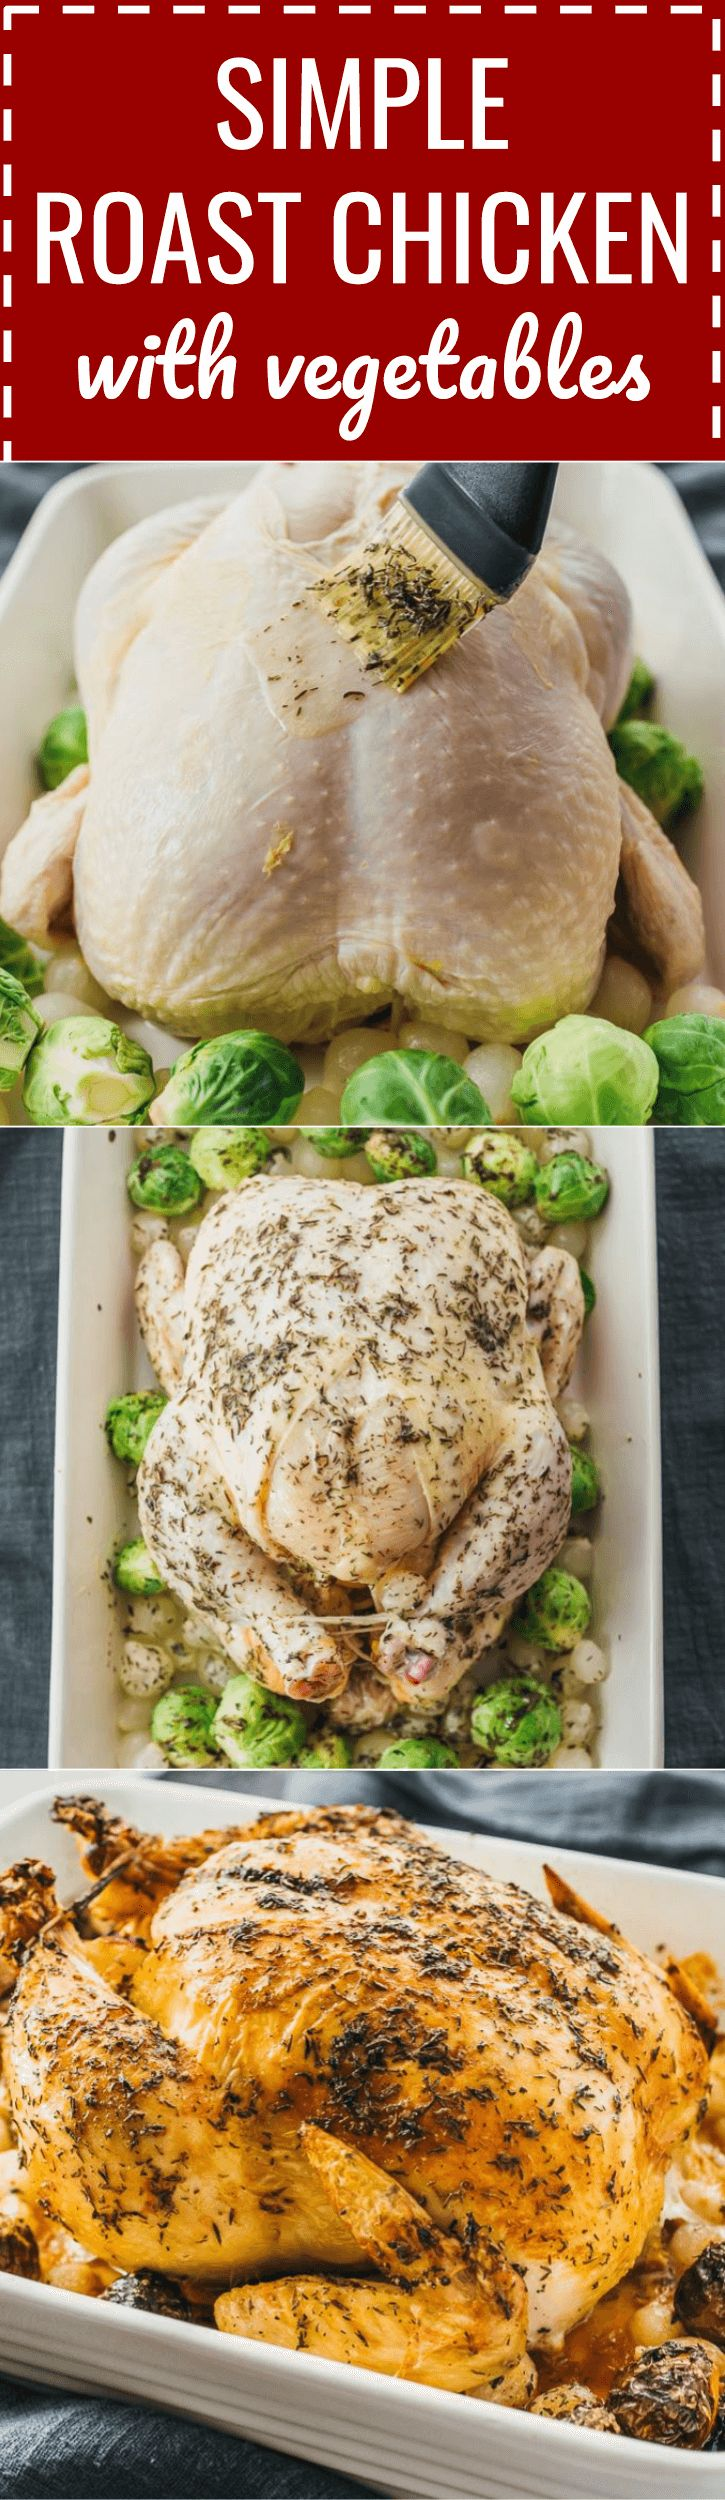 A simple roast chicken recipe served with vegetables including brussels sprouts and onions. in oven / and vegetables / perfect / seasoning / lemon / garlic / stuffed / how to / juicy / with stuffing / sunday / ideas / illustration / temperature / ina garten / easy / herb / holiday / christmas / thanksgiving / keto / low carb / diet / atkins / induction / meals / recipes / easy / dinner / lunch / foods / healthy / gluten free / paleo / best / crispy / pan #chicken #vegetables